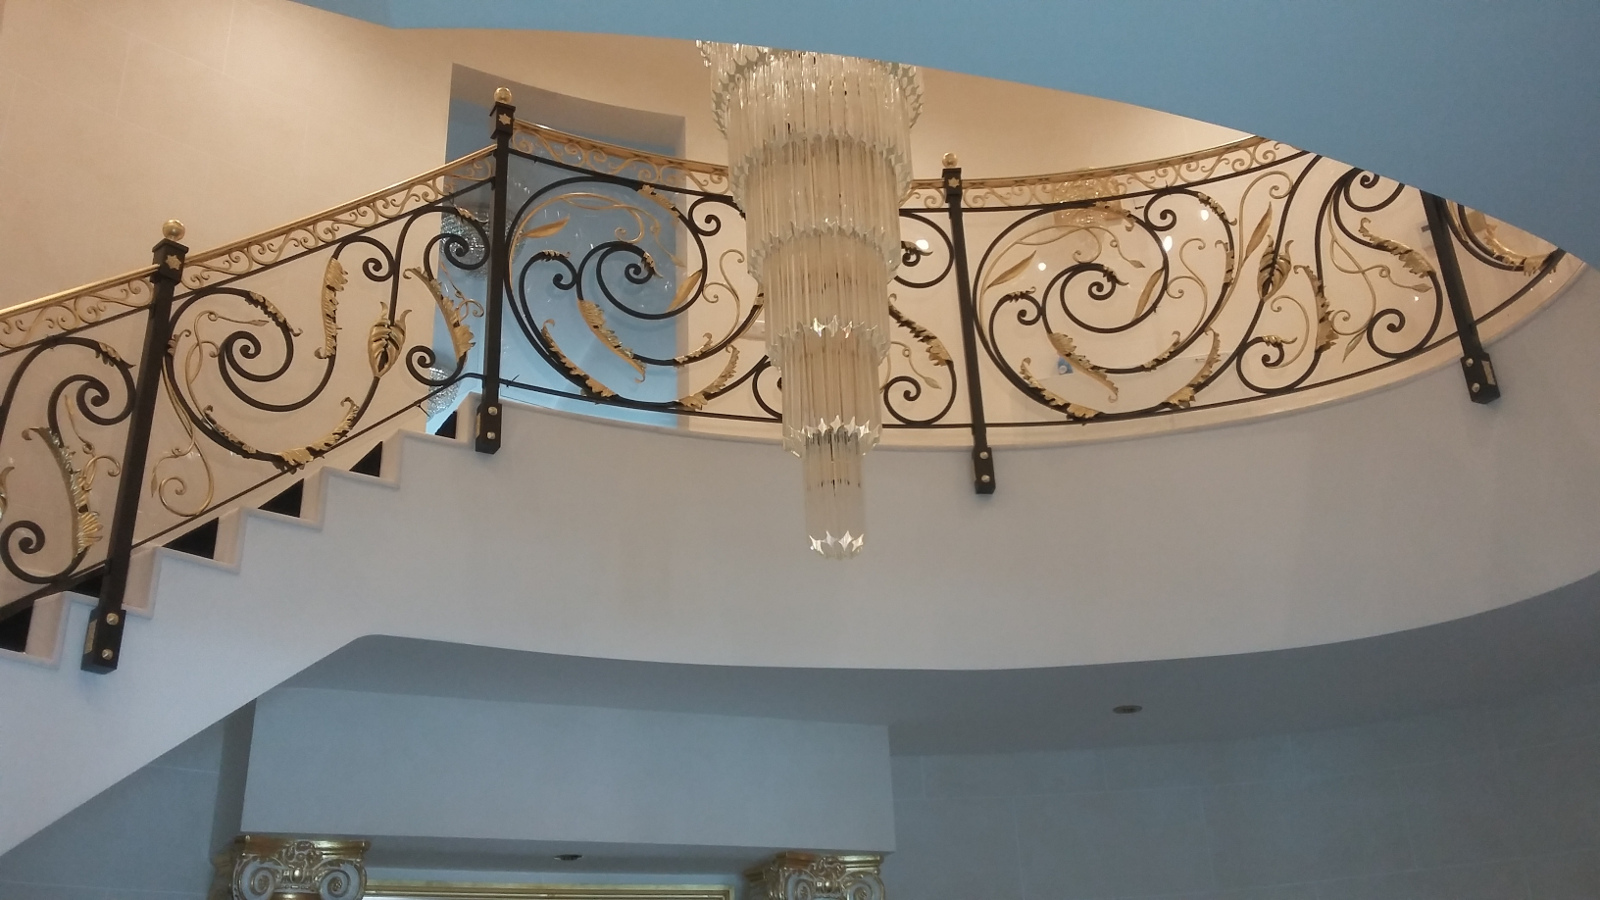 Wrought-iron-staircase-with-decorative-floral-elements-and-handrail-in-mirror-polished-brass-Plexiglas-protection